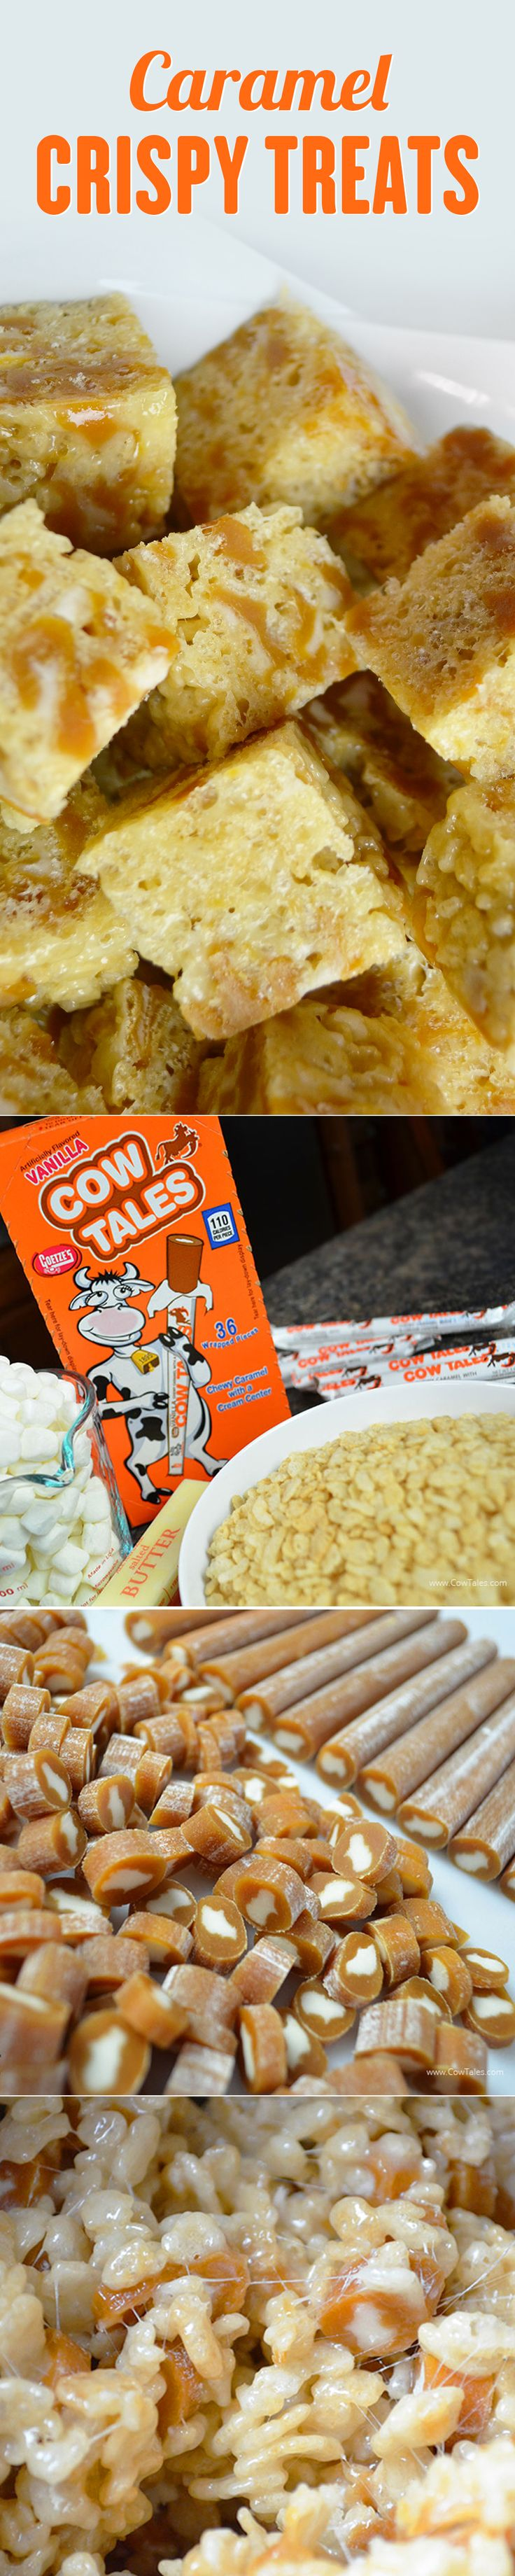 These are crazy good! Add Cow Tales to homemade crispy treats for an unbelievable crunchy caramel treat!